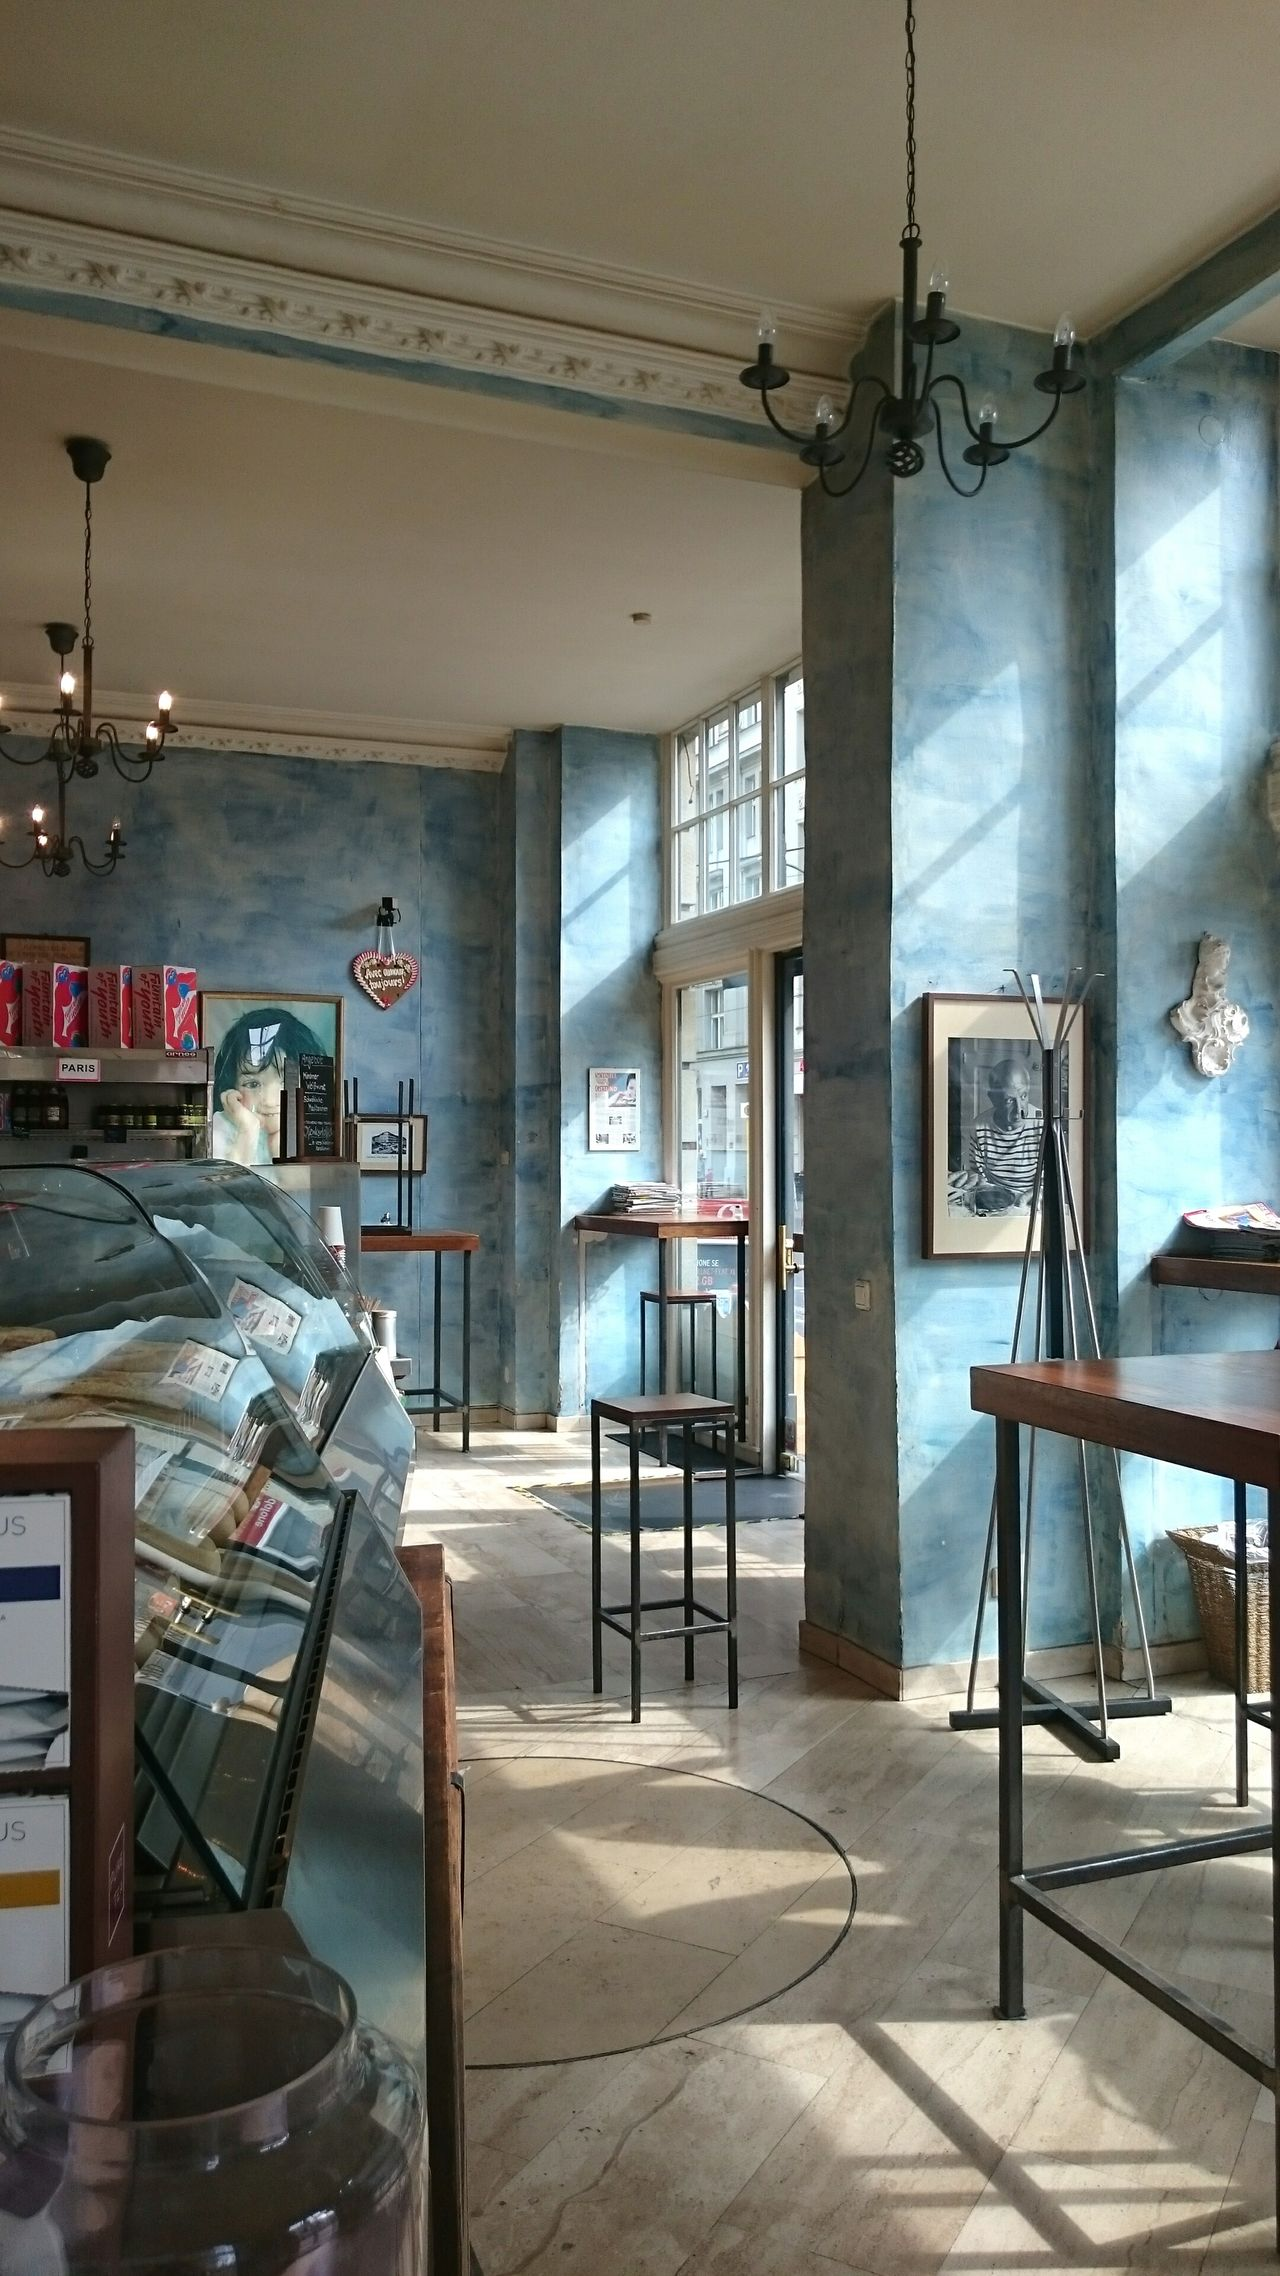 Cafe In Berlin French Style Cafe Interior Photography The Cage On The Corner Markanns Berlin Mitte Blue Wall Sun Through The Window